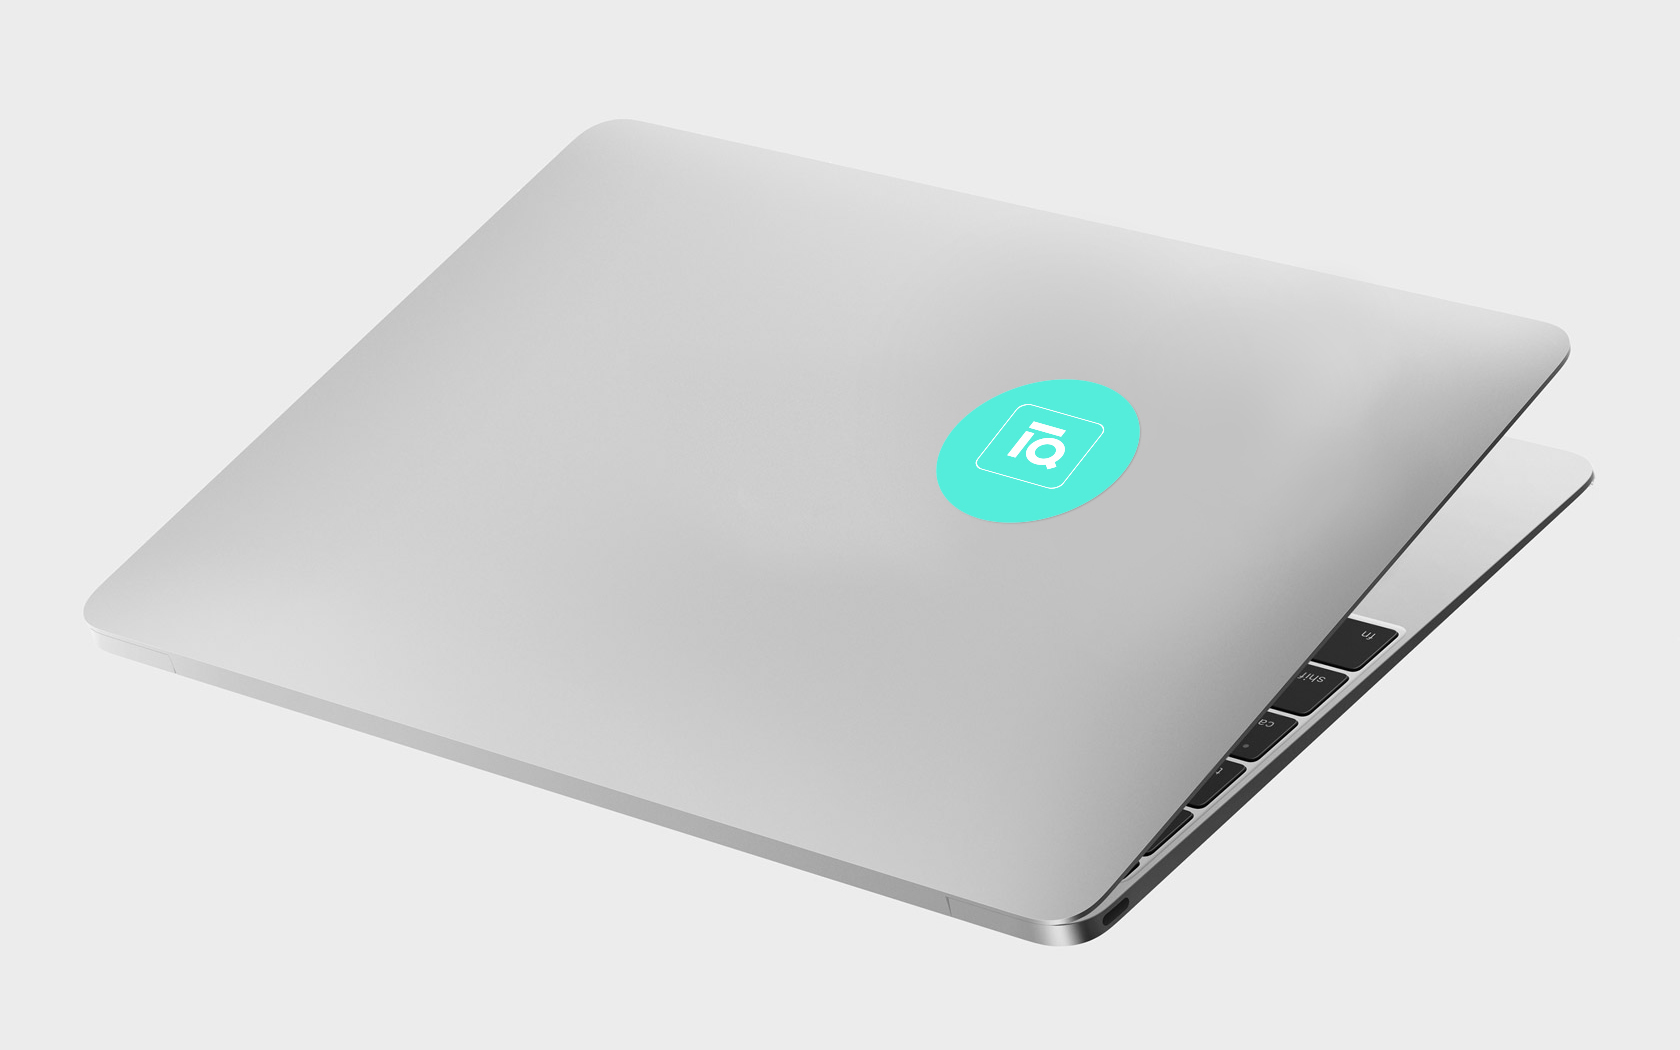 ECONAMIQ laptop